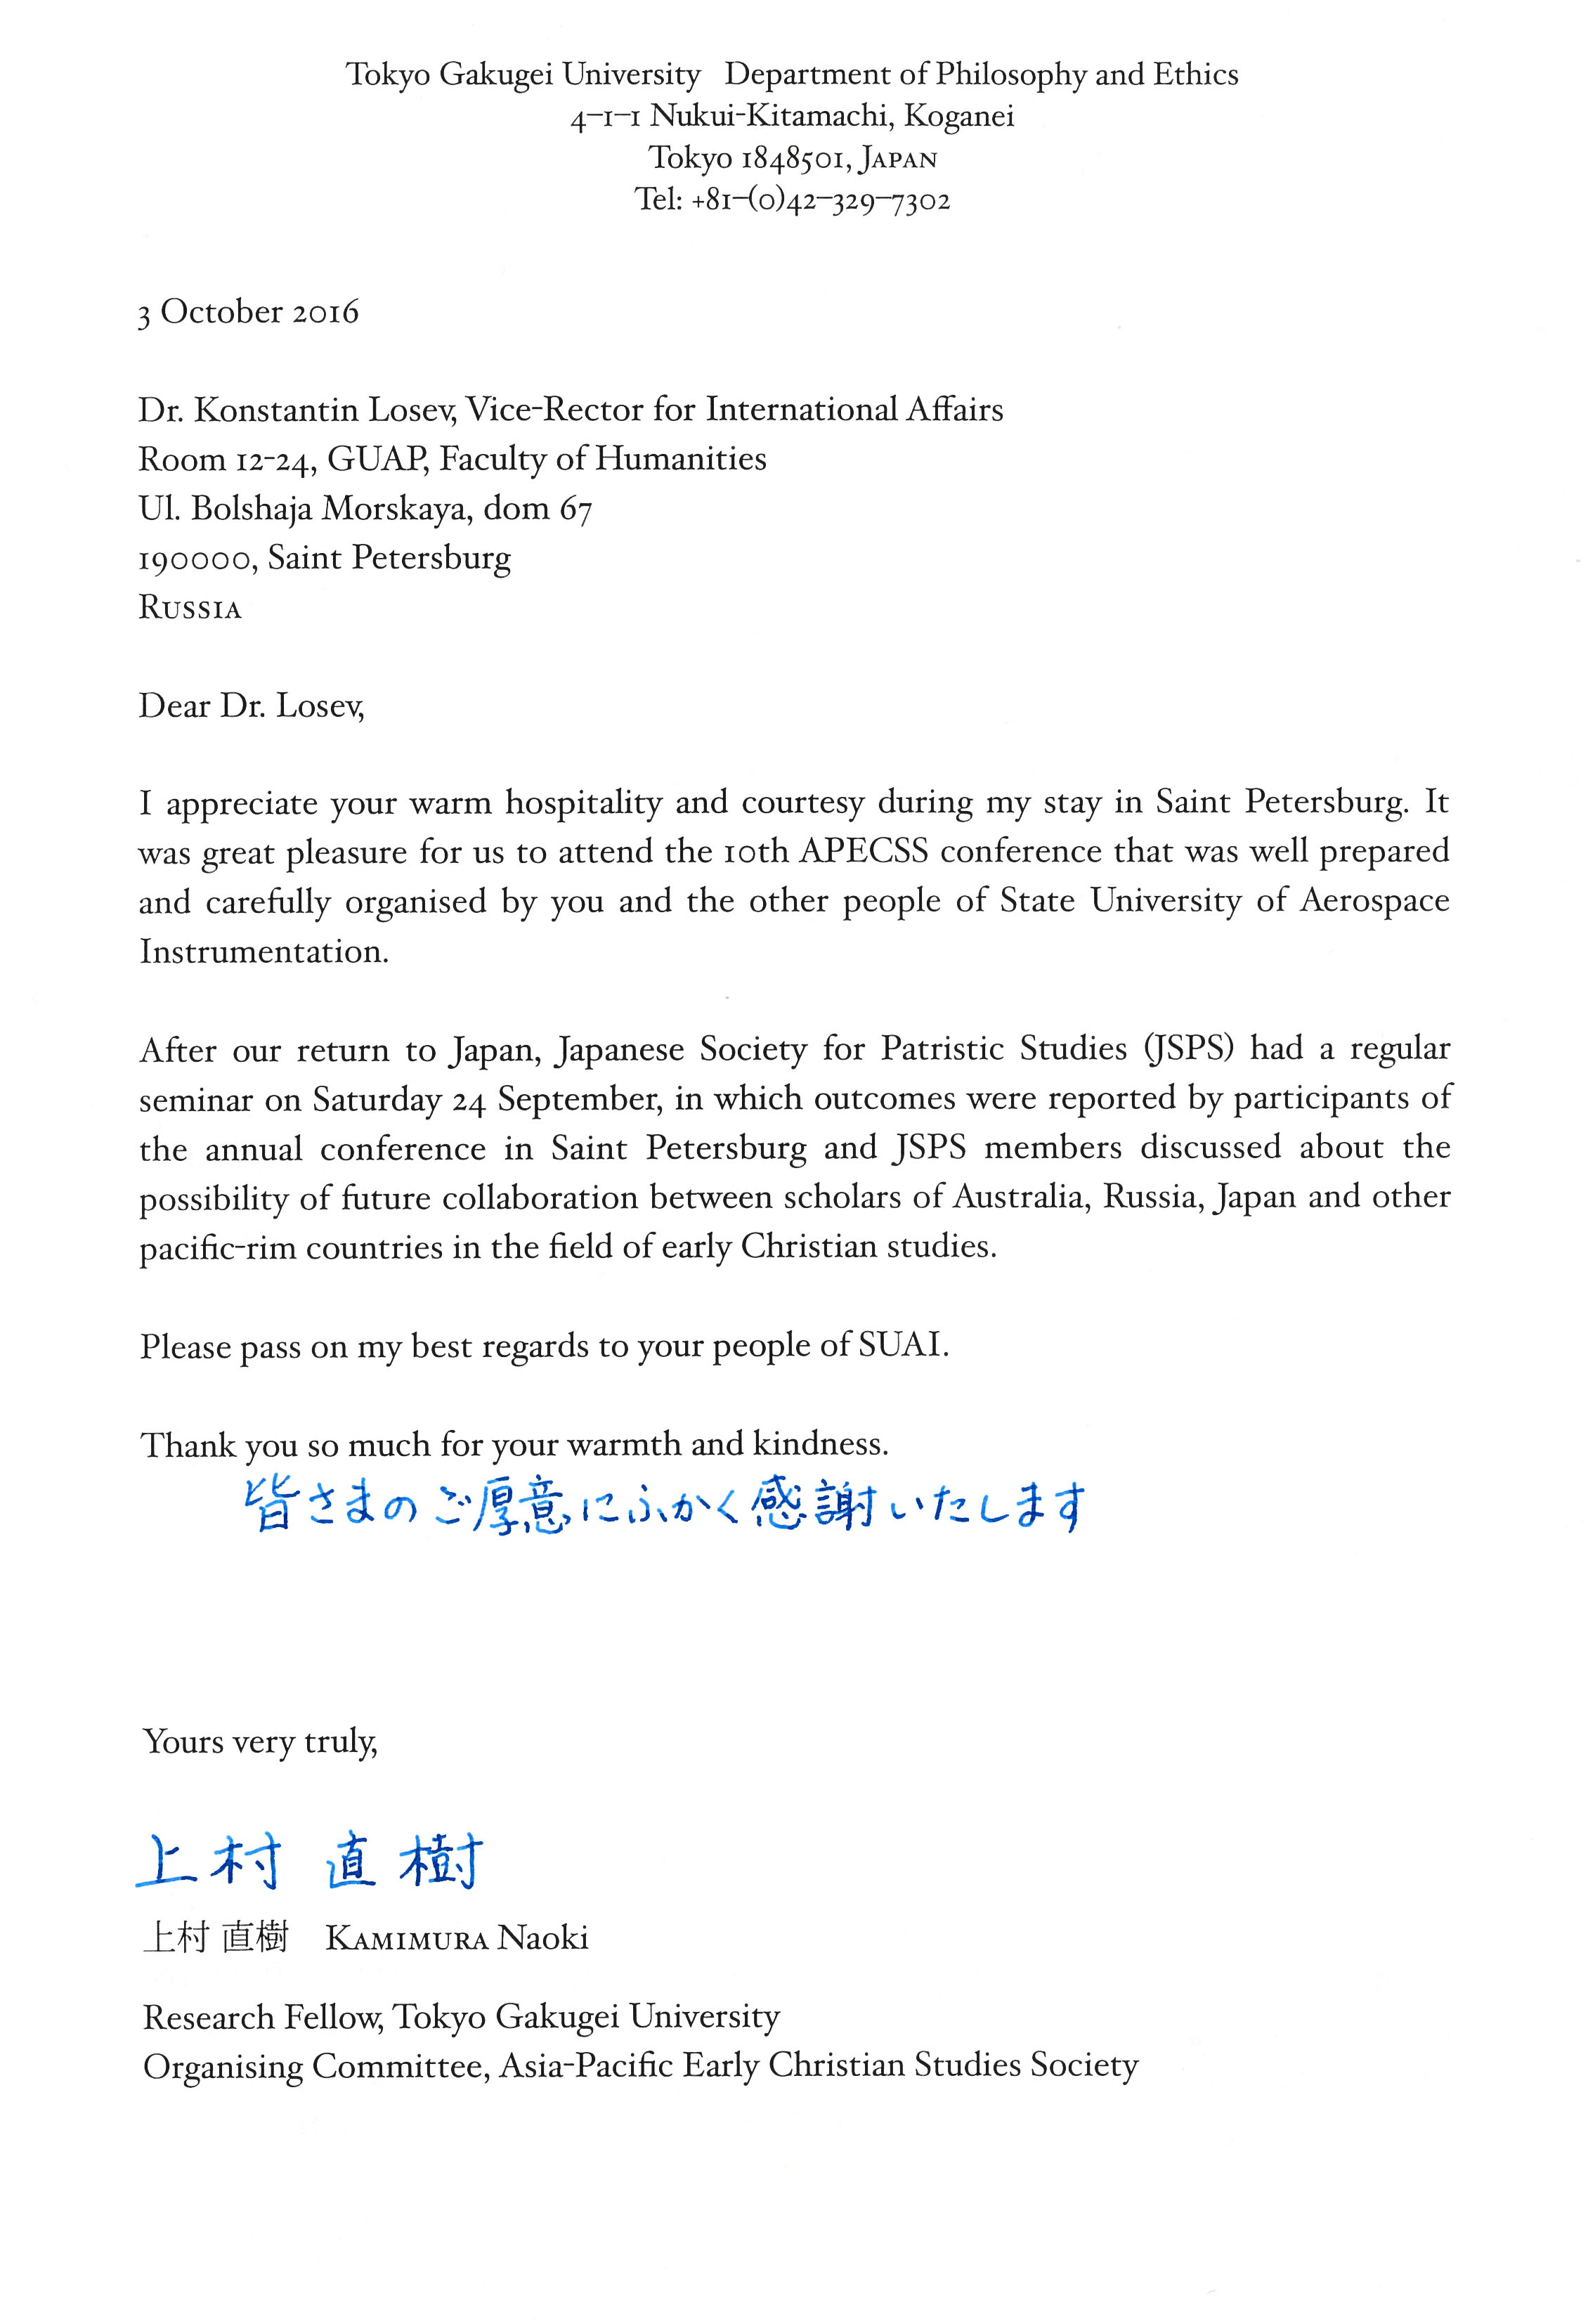 Letter of appreciation from tokyo gakugei university department of 2016japan spiritdancerdesigns Choice Image